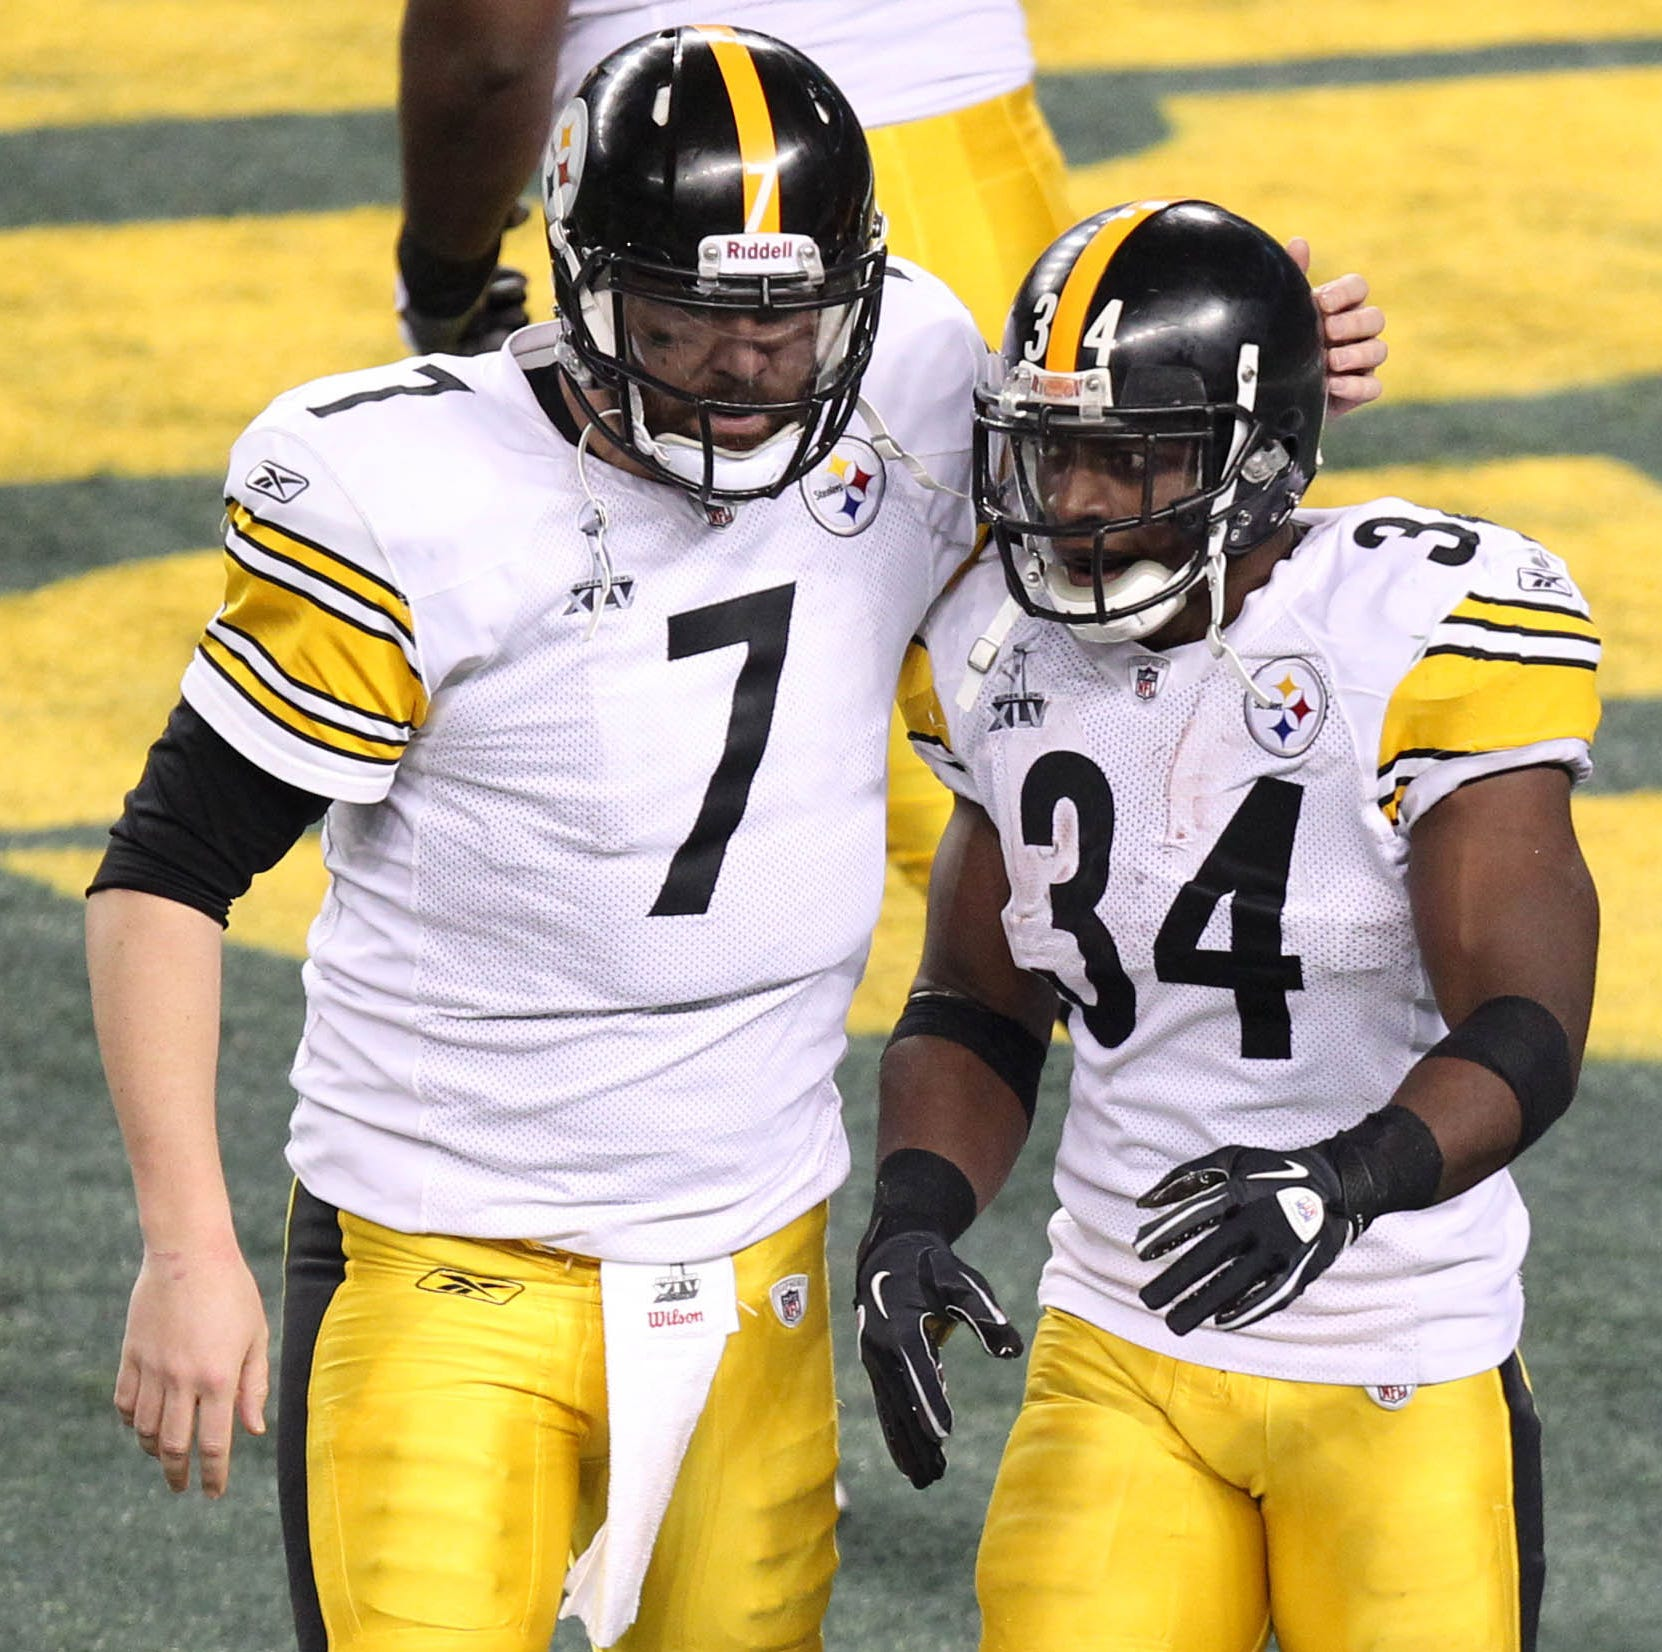 Rashard Mendenhall walks back 'racist' Ben Roethlisberger claim in Antonio Brown feud